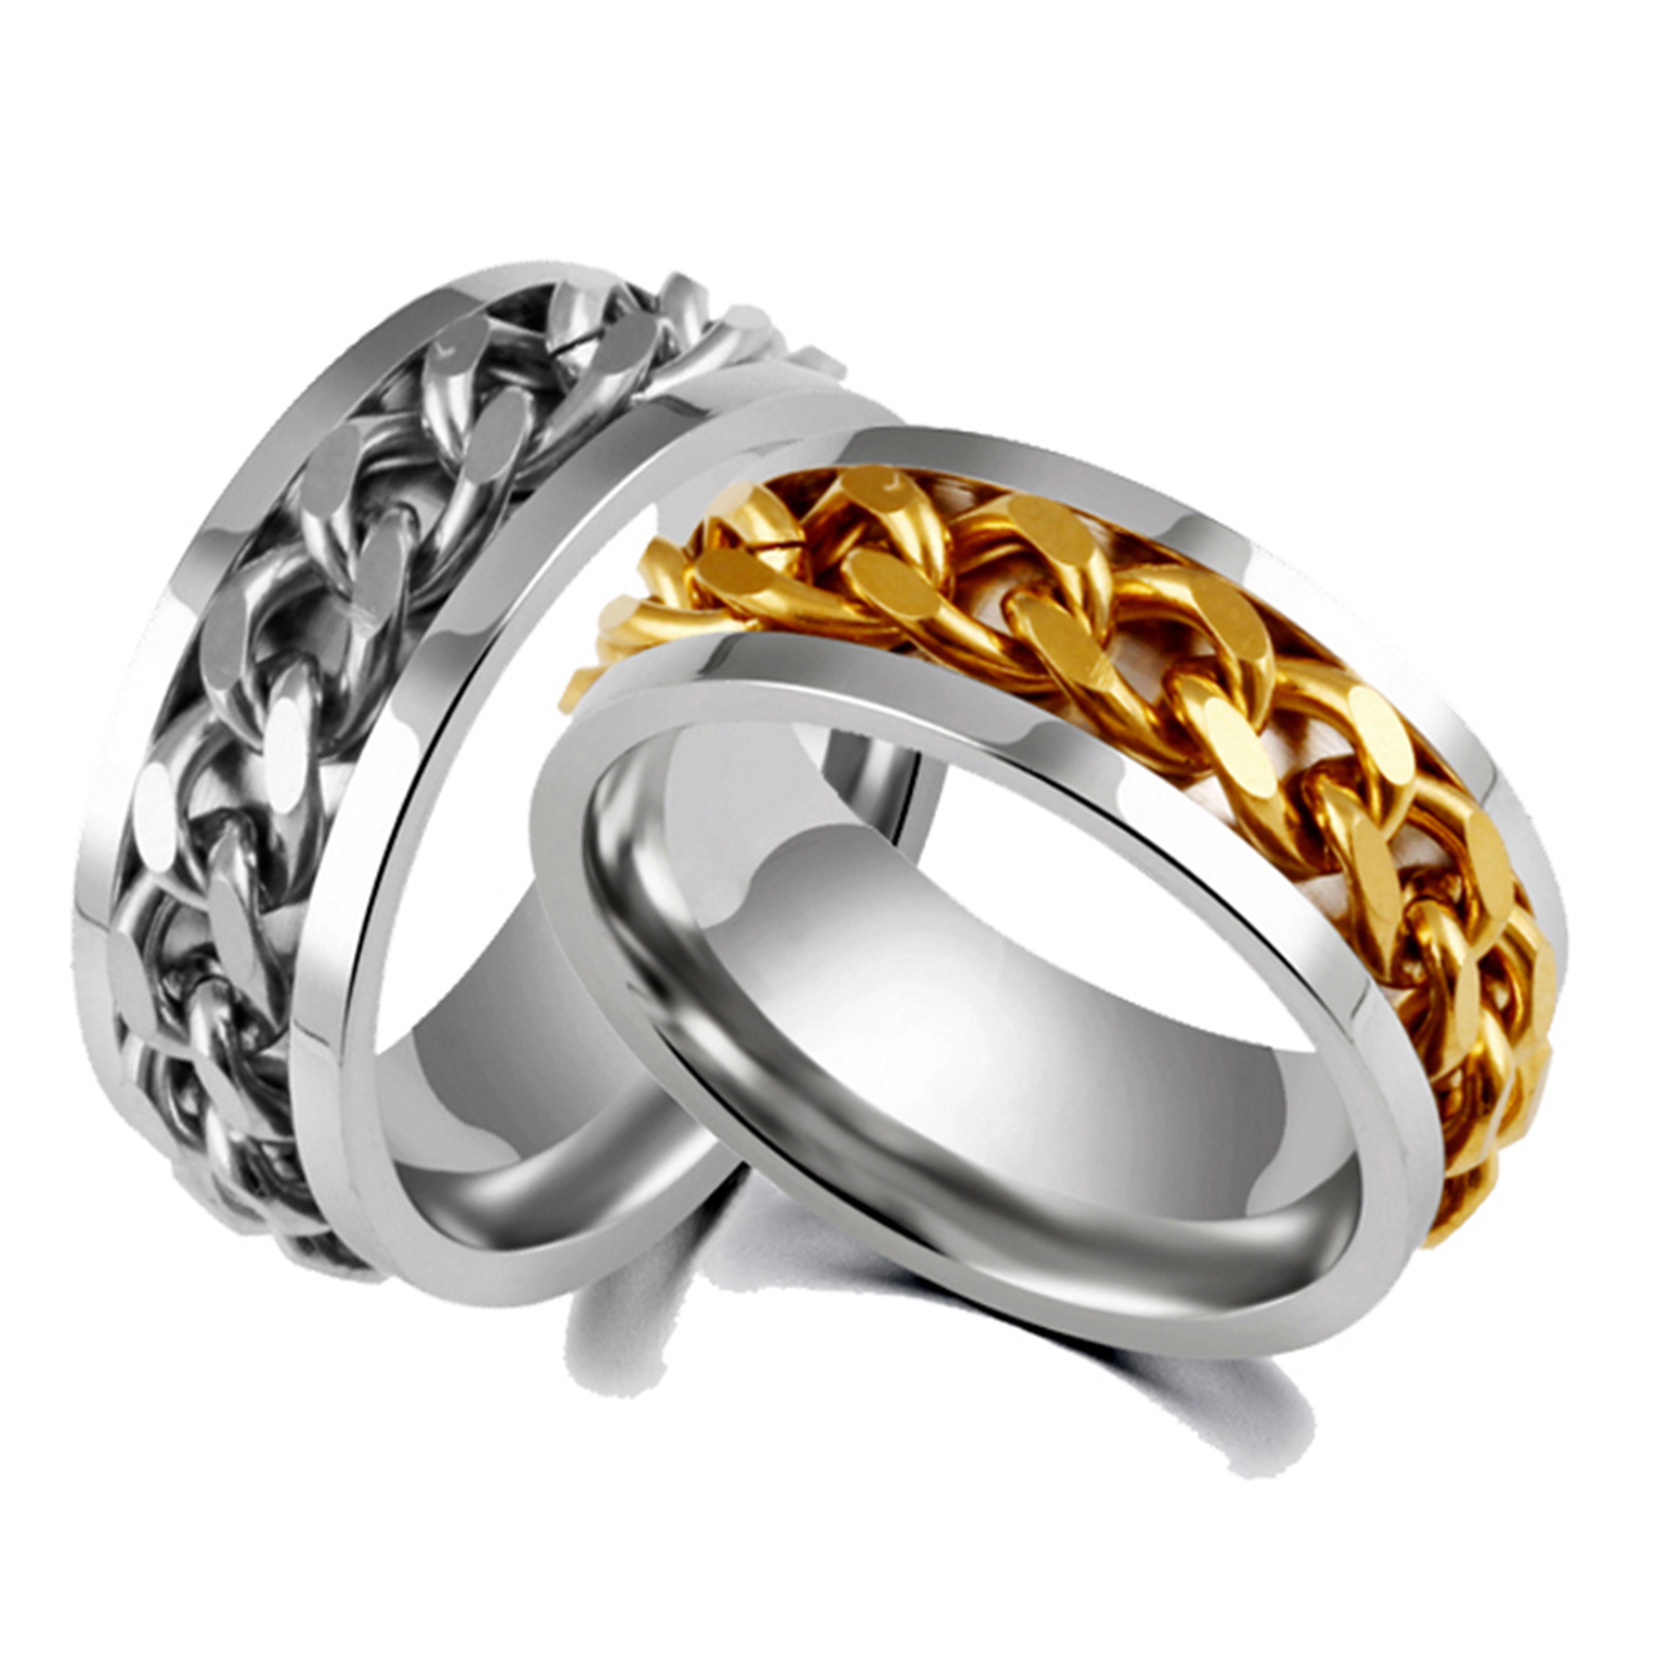 s jewelry 316l stainless steel with unique shaped